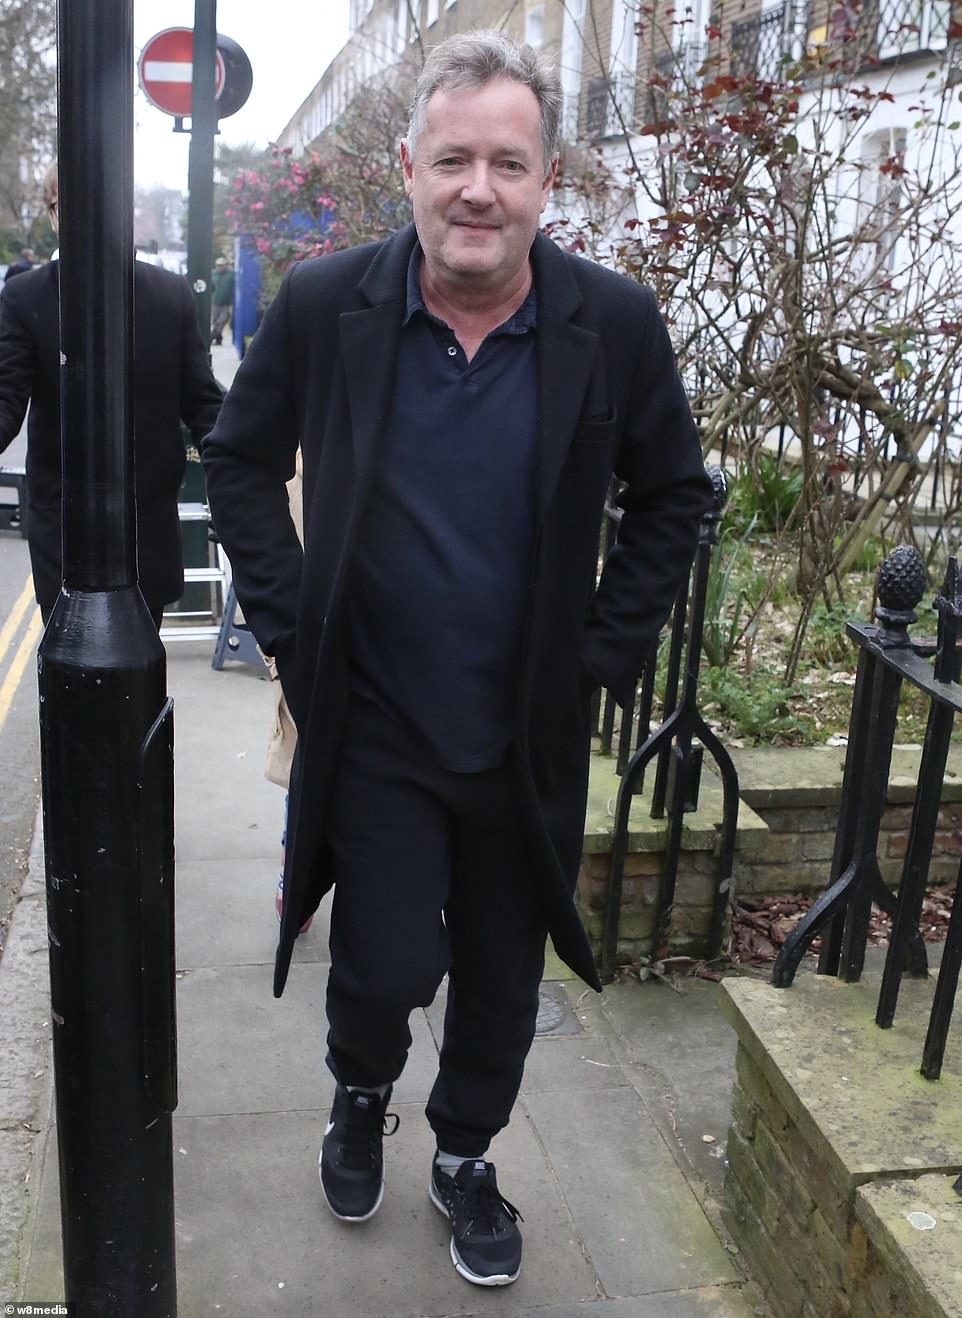 The tough-talking morning show host, who has helped rocket the ITV show to its highest ever viewing figures, went for a walk with his daughter this morning (pictured)